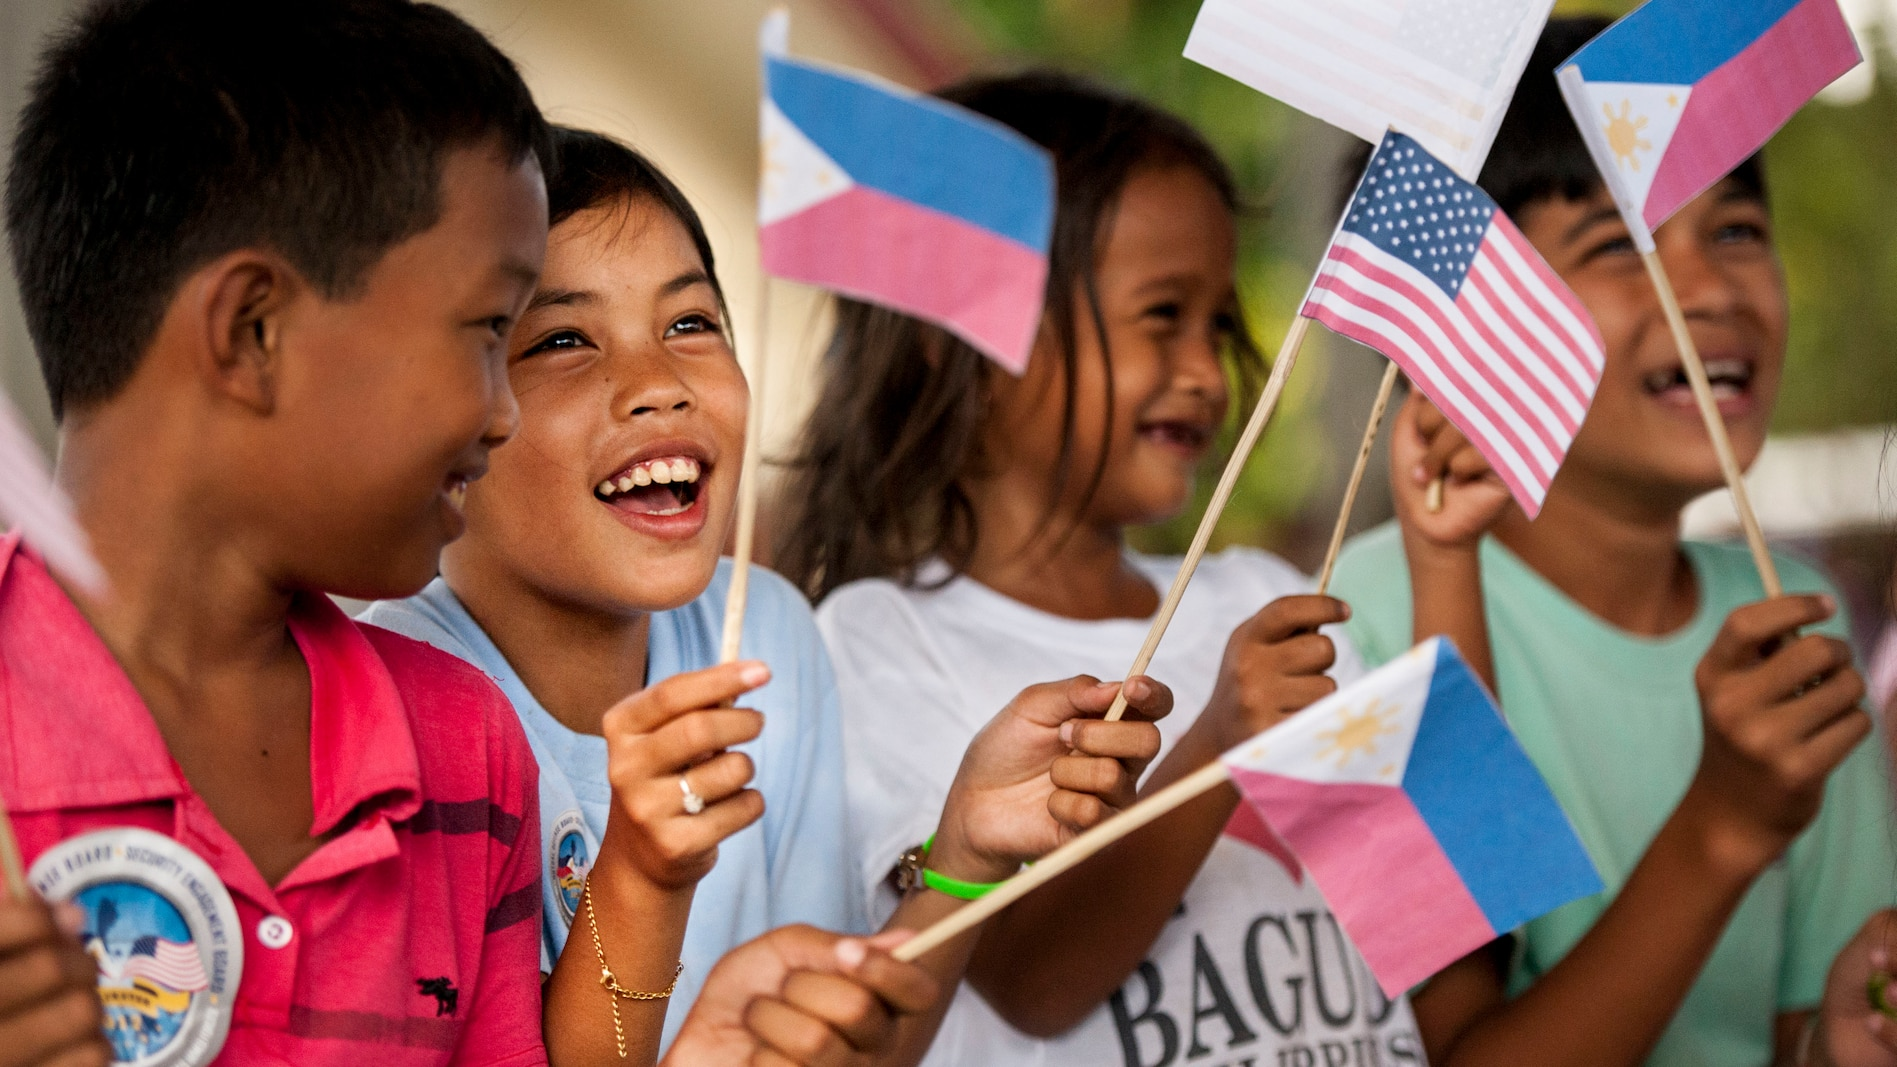 Filipino children wave U.S. and Philippine flags during a groundbreaking ceremony for Balikatan 2017 in Ormoc City, Leyte, April 25, 2017.